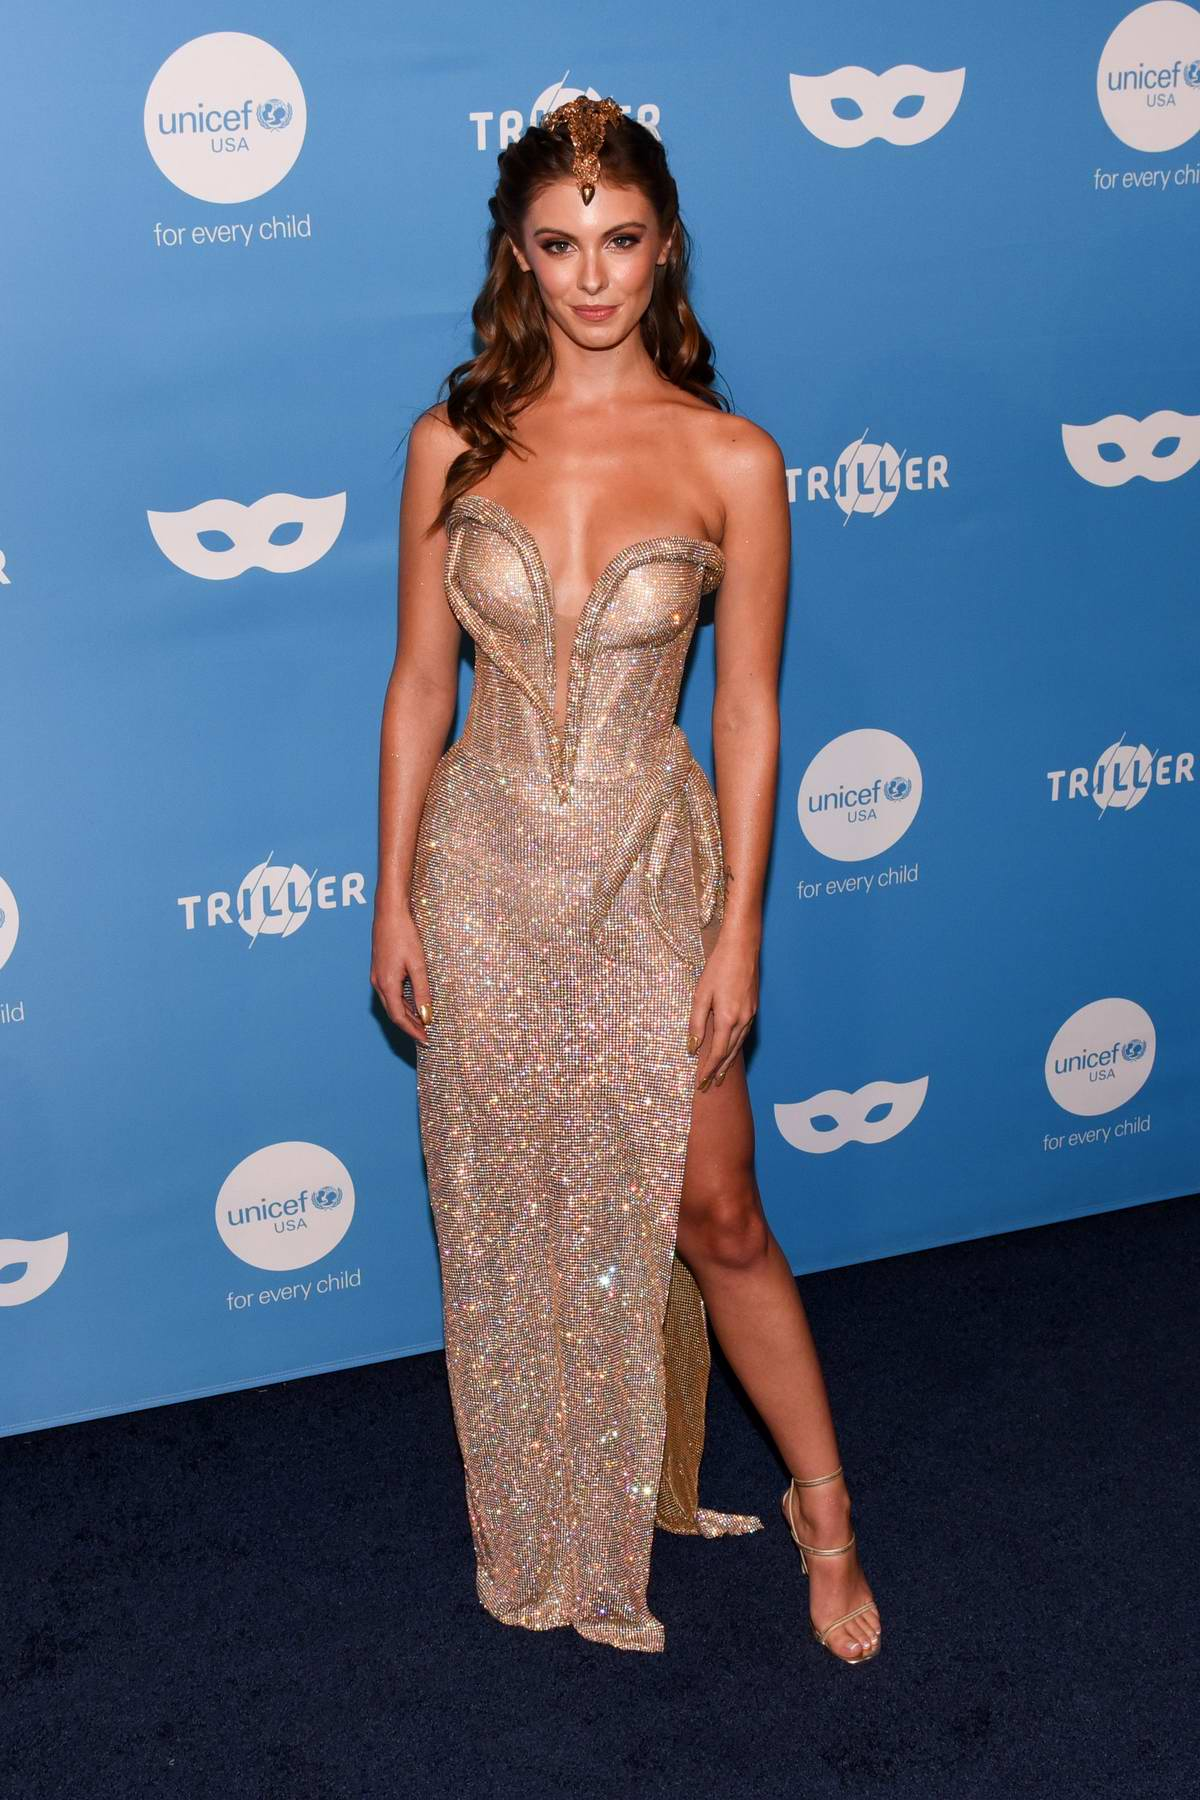 Carmella Rose attends the UNICEF Masquerade Ball 2019 in West Hollywood, Los Angeles